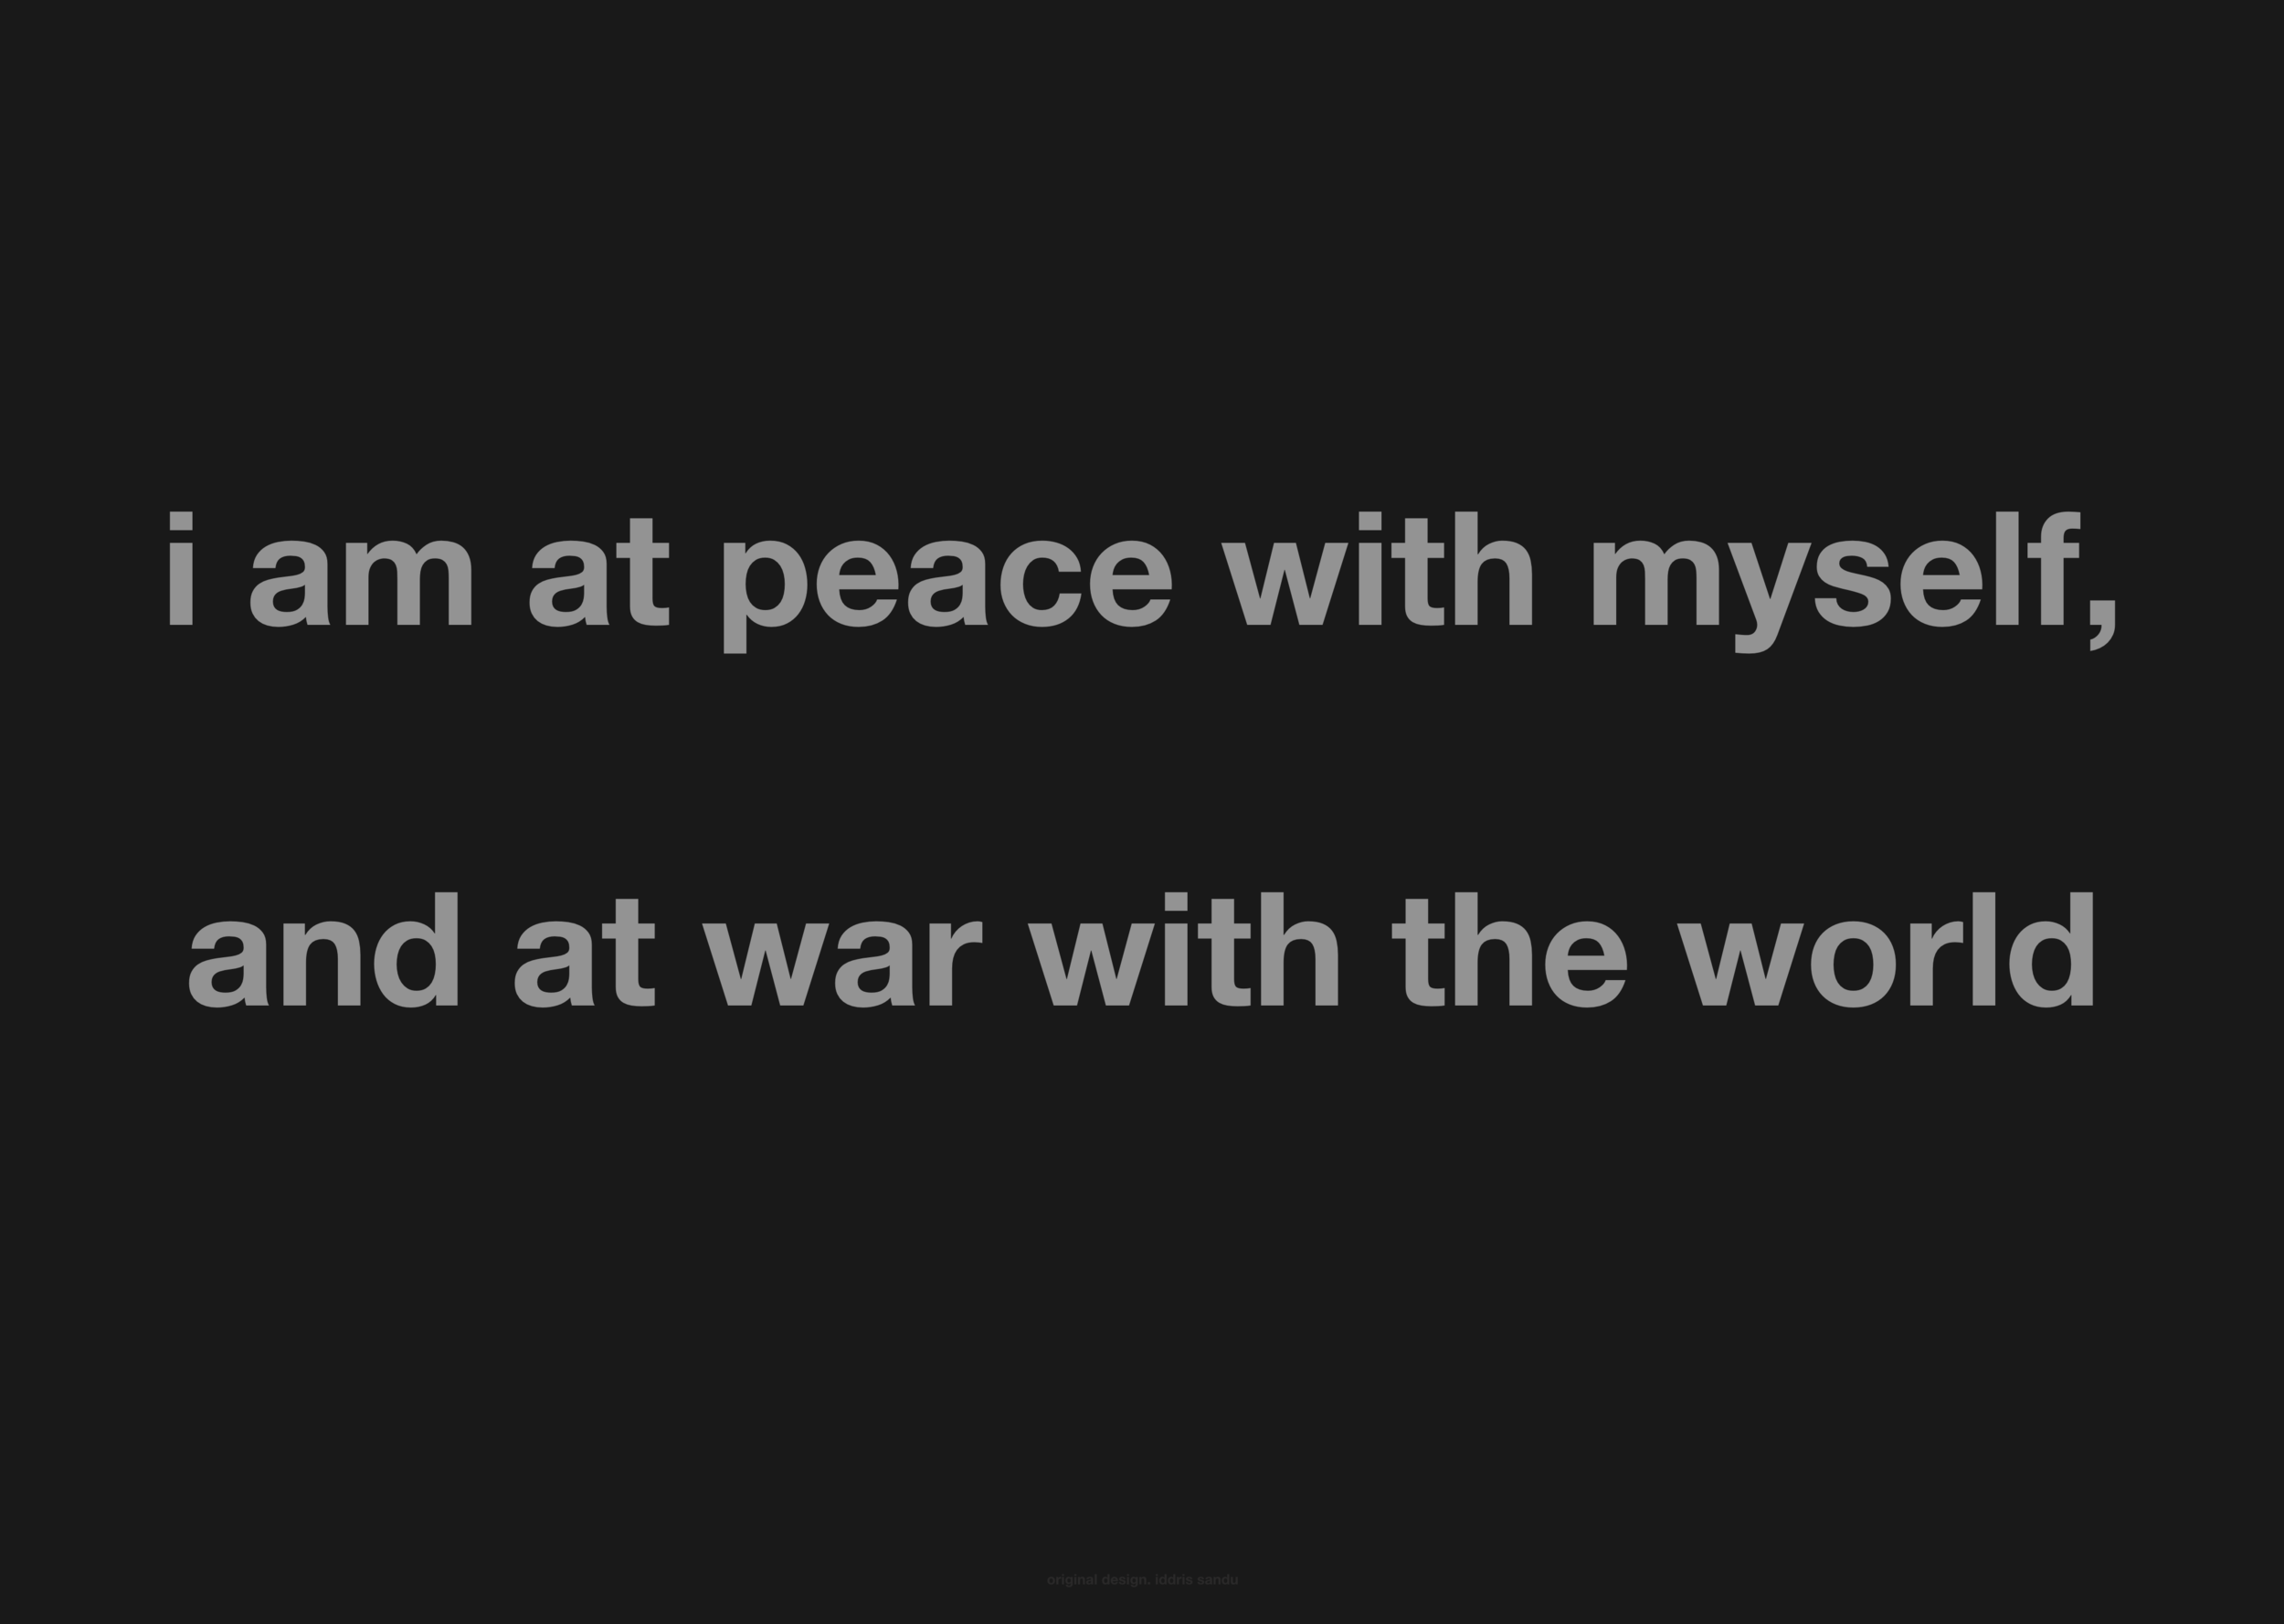 i am at peace with myself, and at war with the world.png